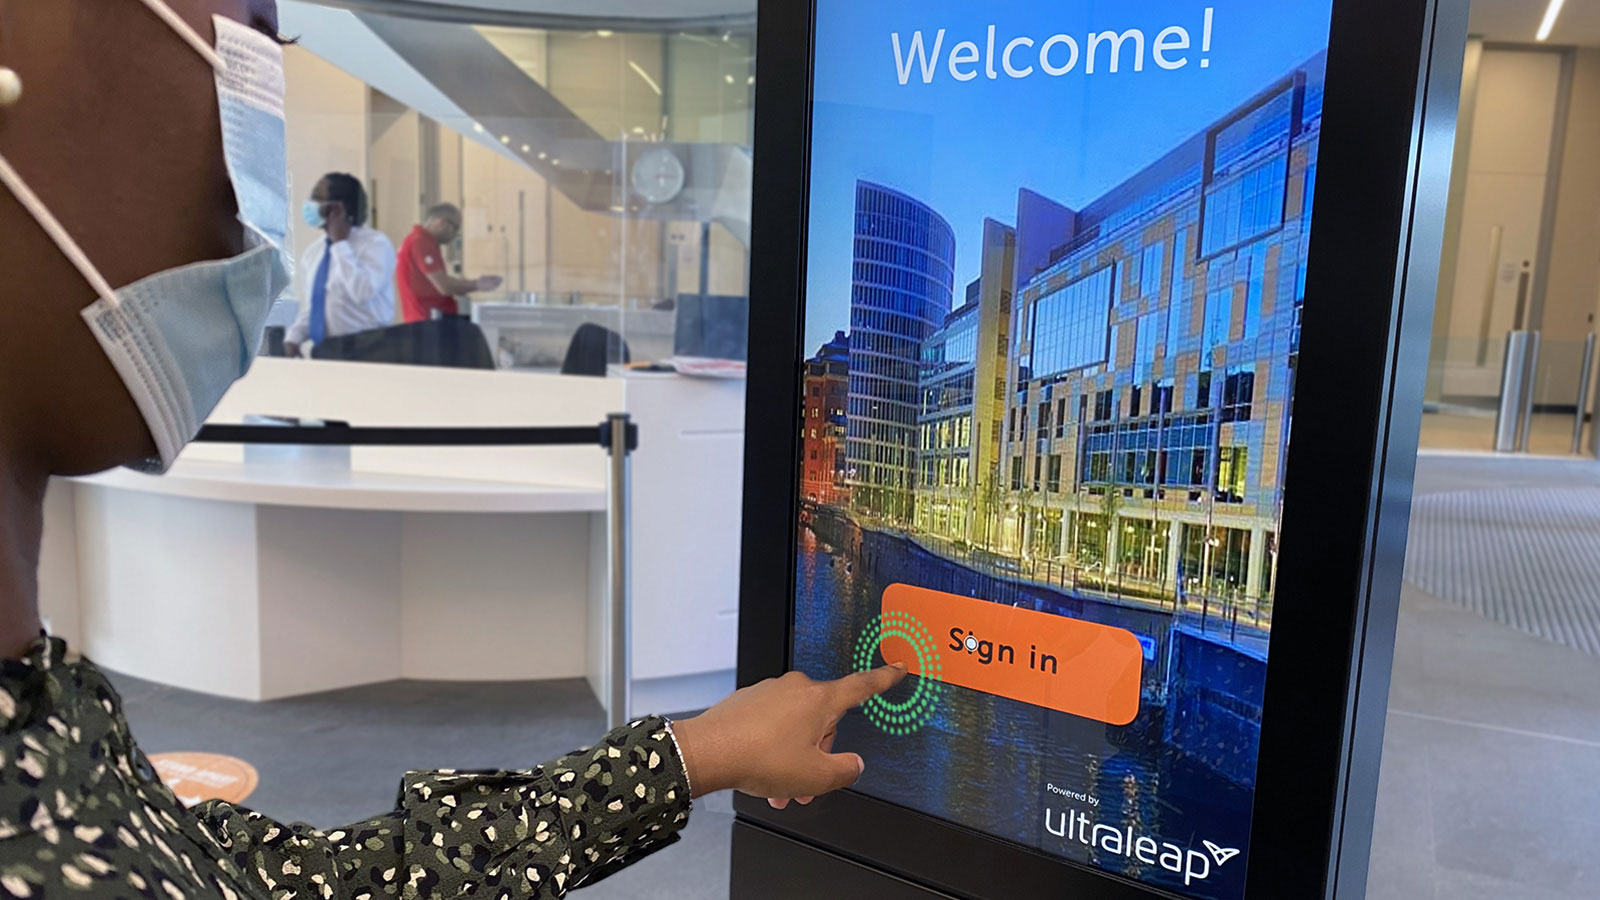 Woman using TouchFree software on an interactive kiosk screen